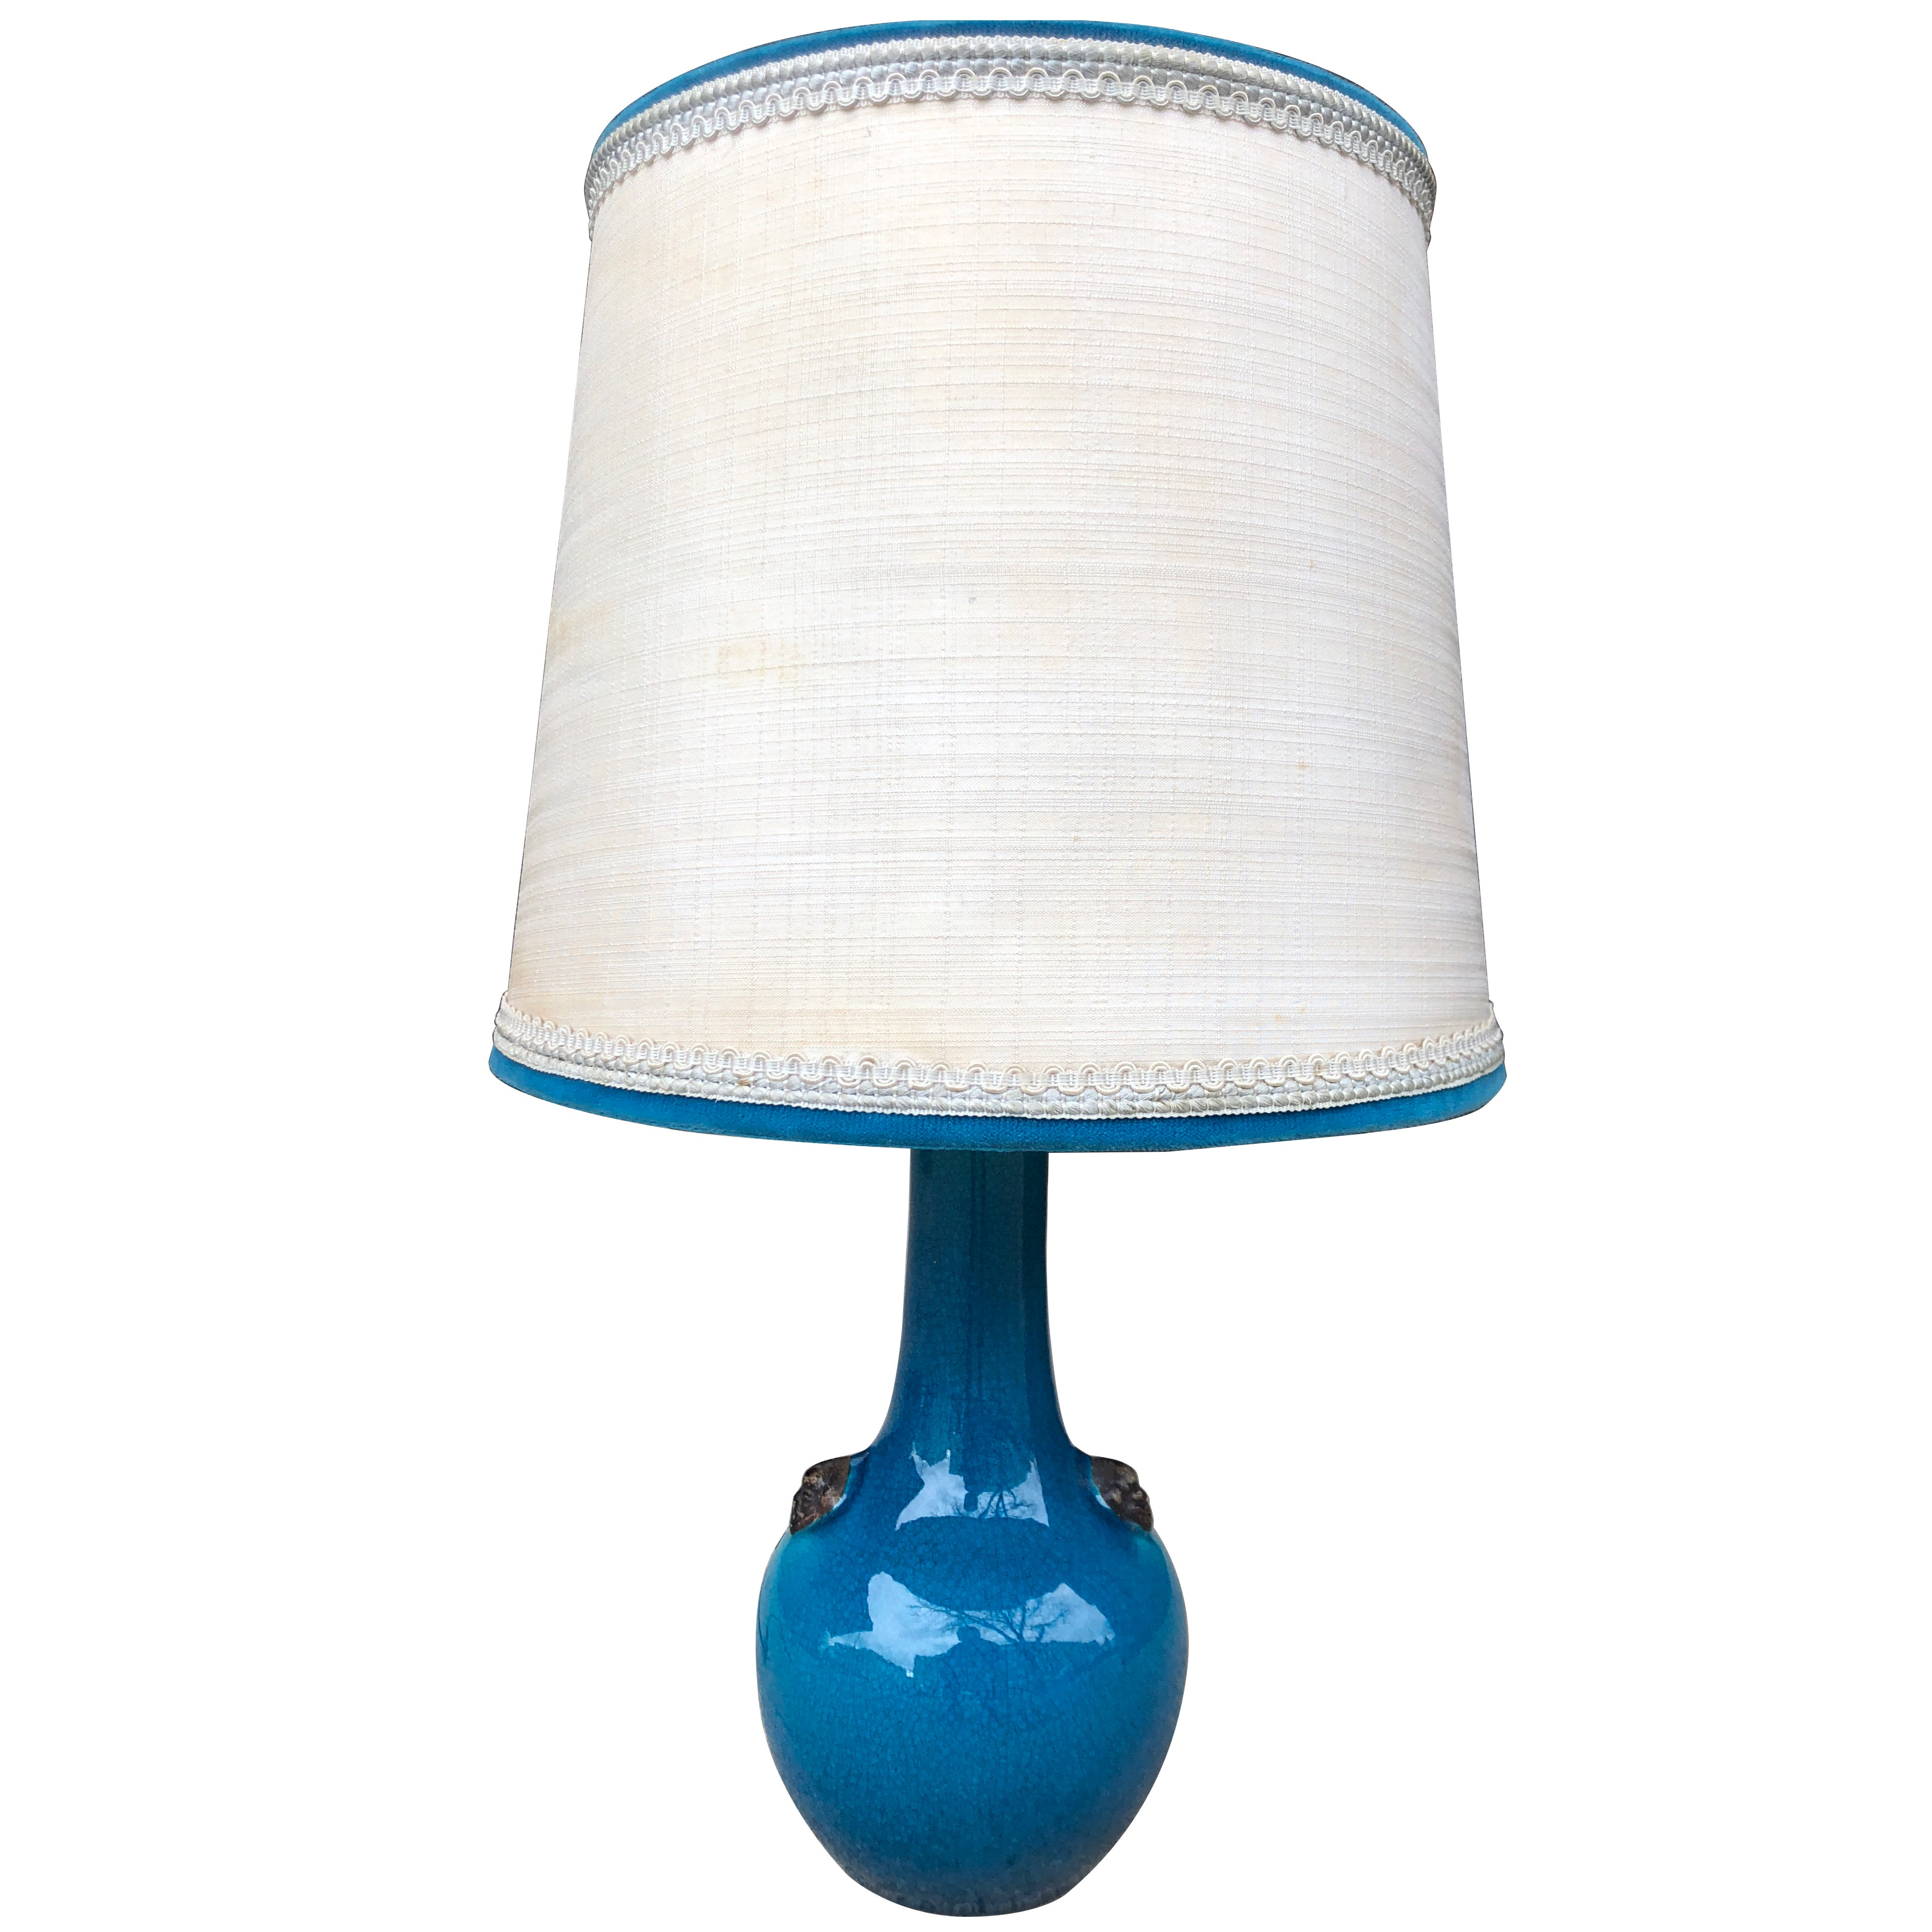 Pol Chambost Blue Craqueleur Lamp with Original Shade; Signed